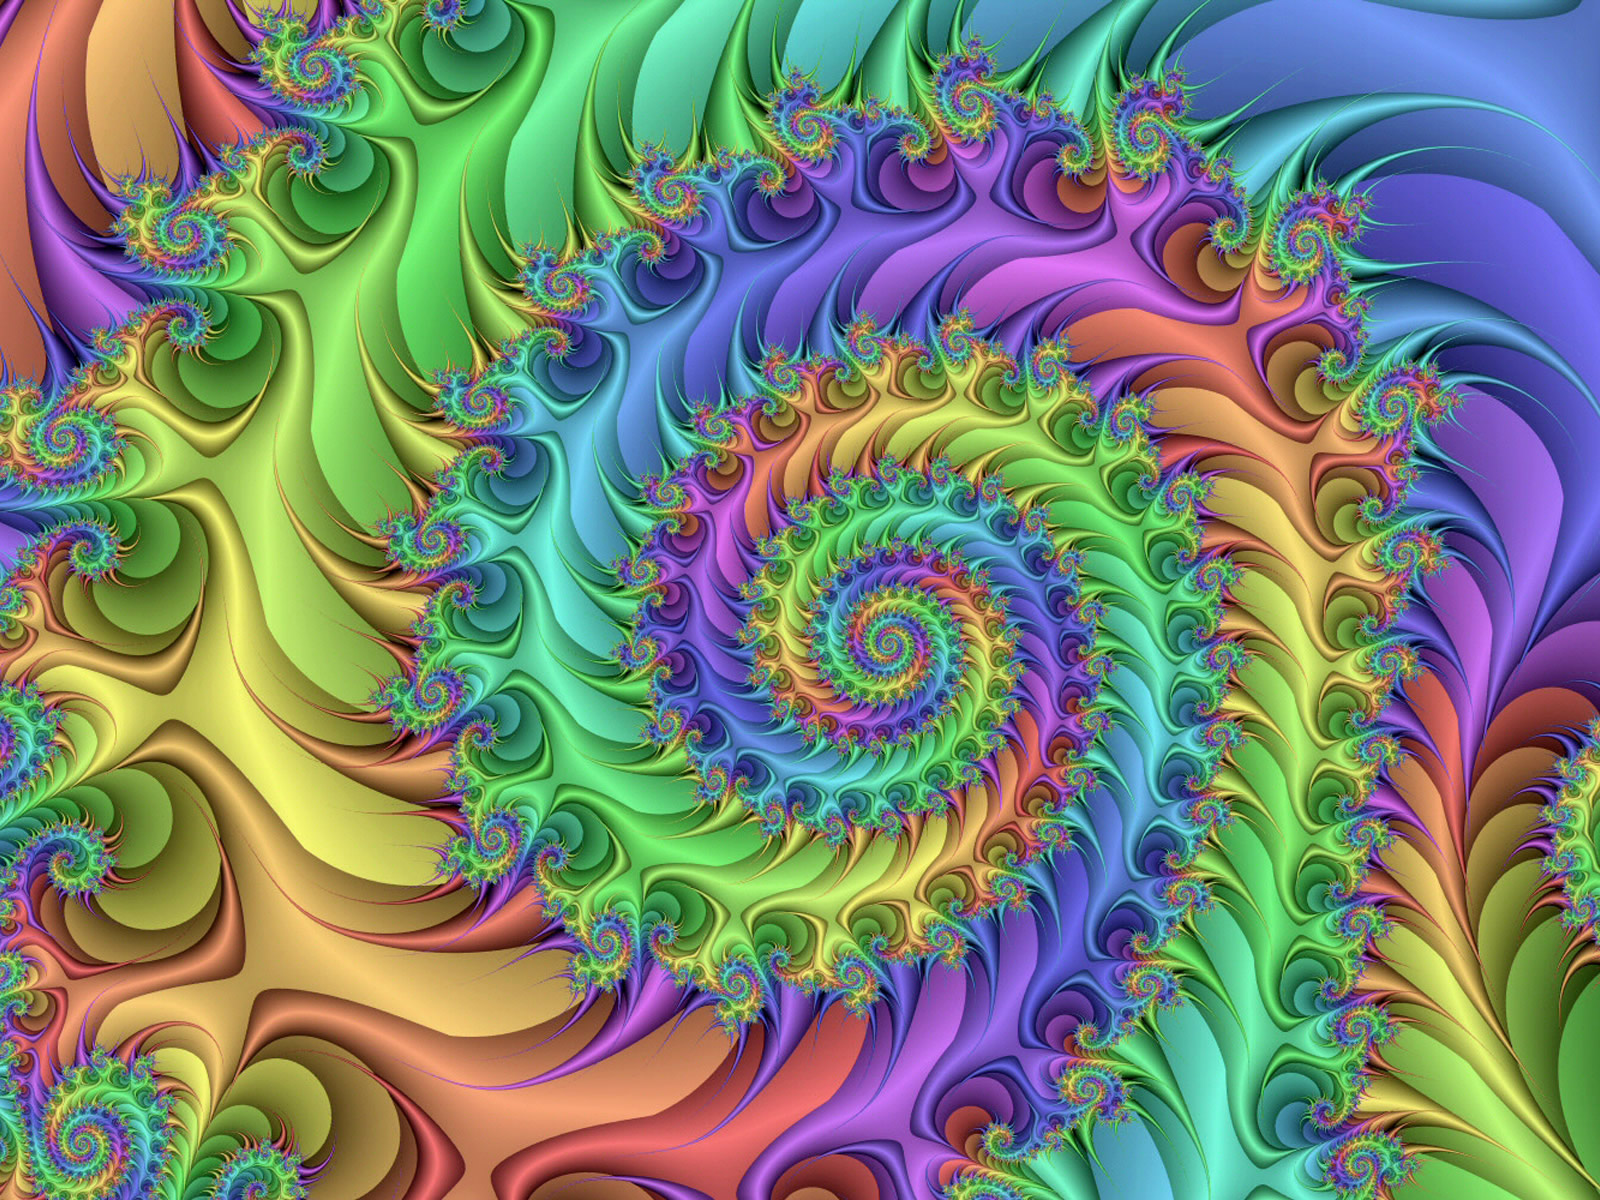 trippy desktop backgrounds Set any of these wallpapers on your screen 1600x1200